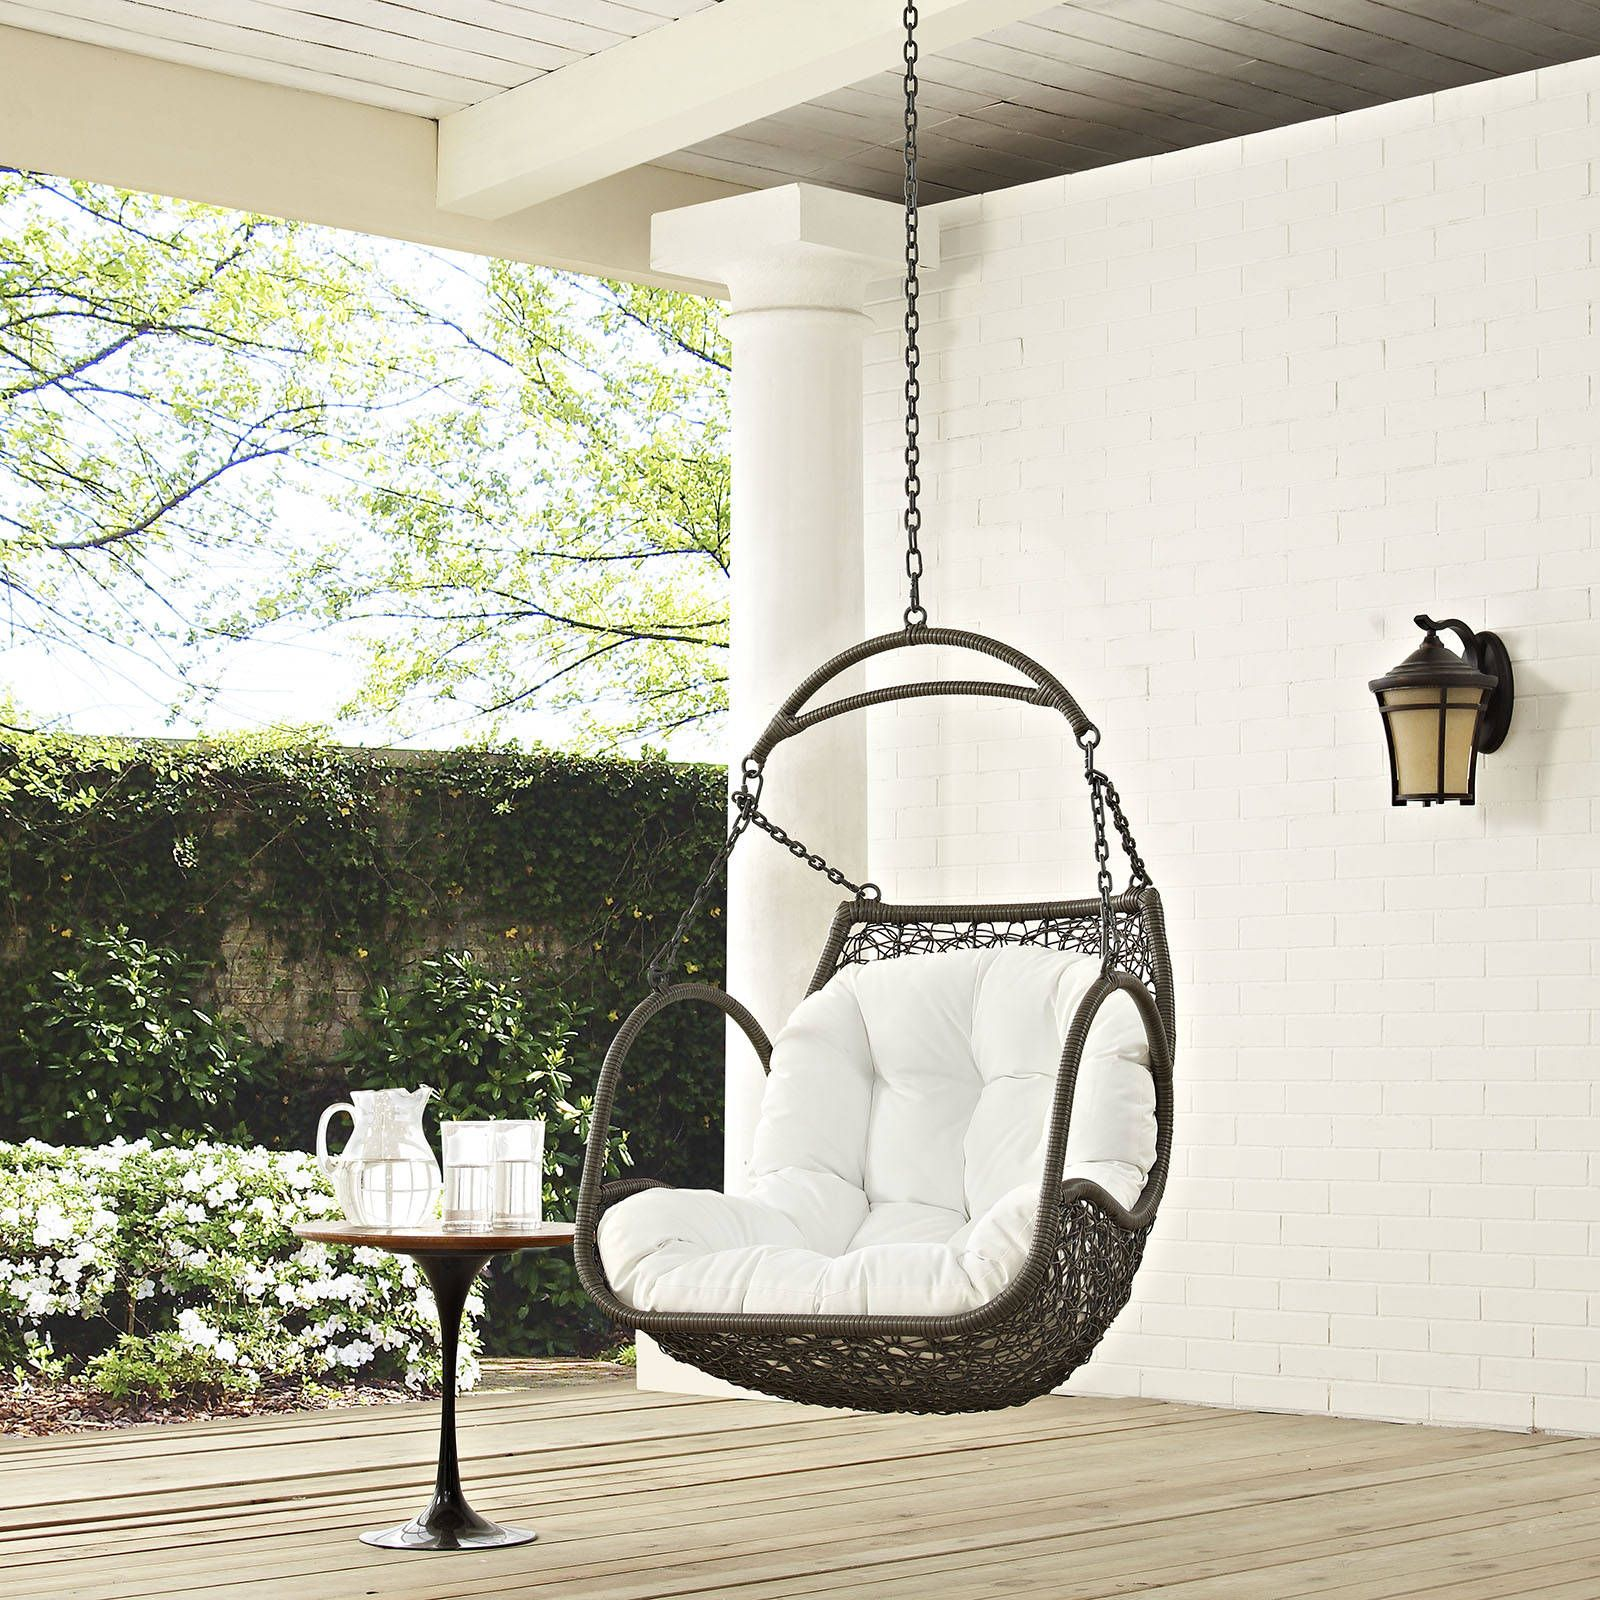 Modway Furniture Arbor White Outdoor Patio Swing Chair